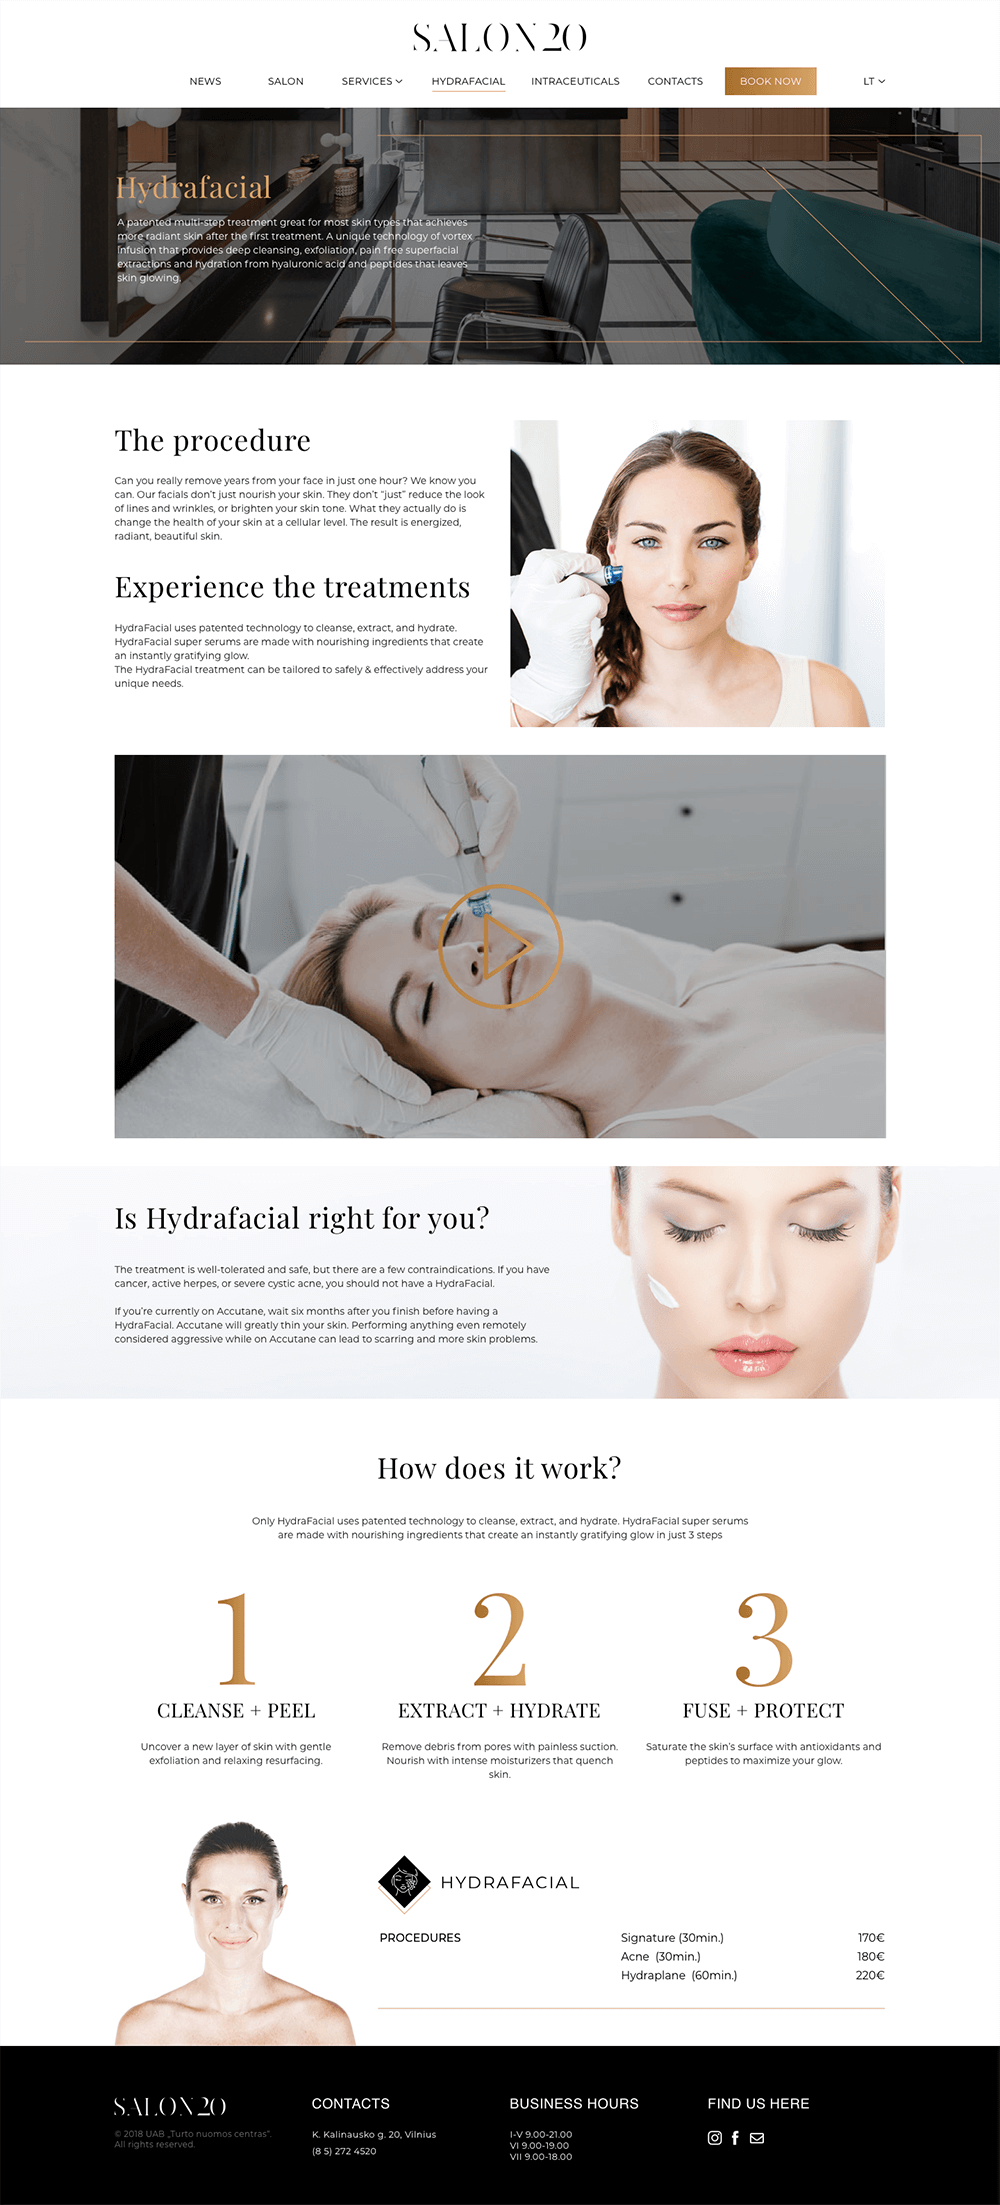 Salon20-Hydrafacial